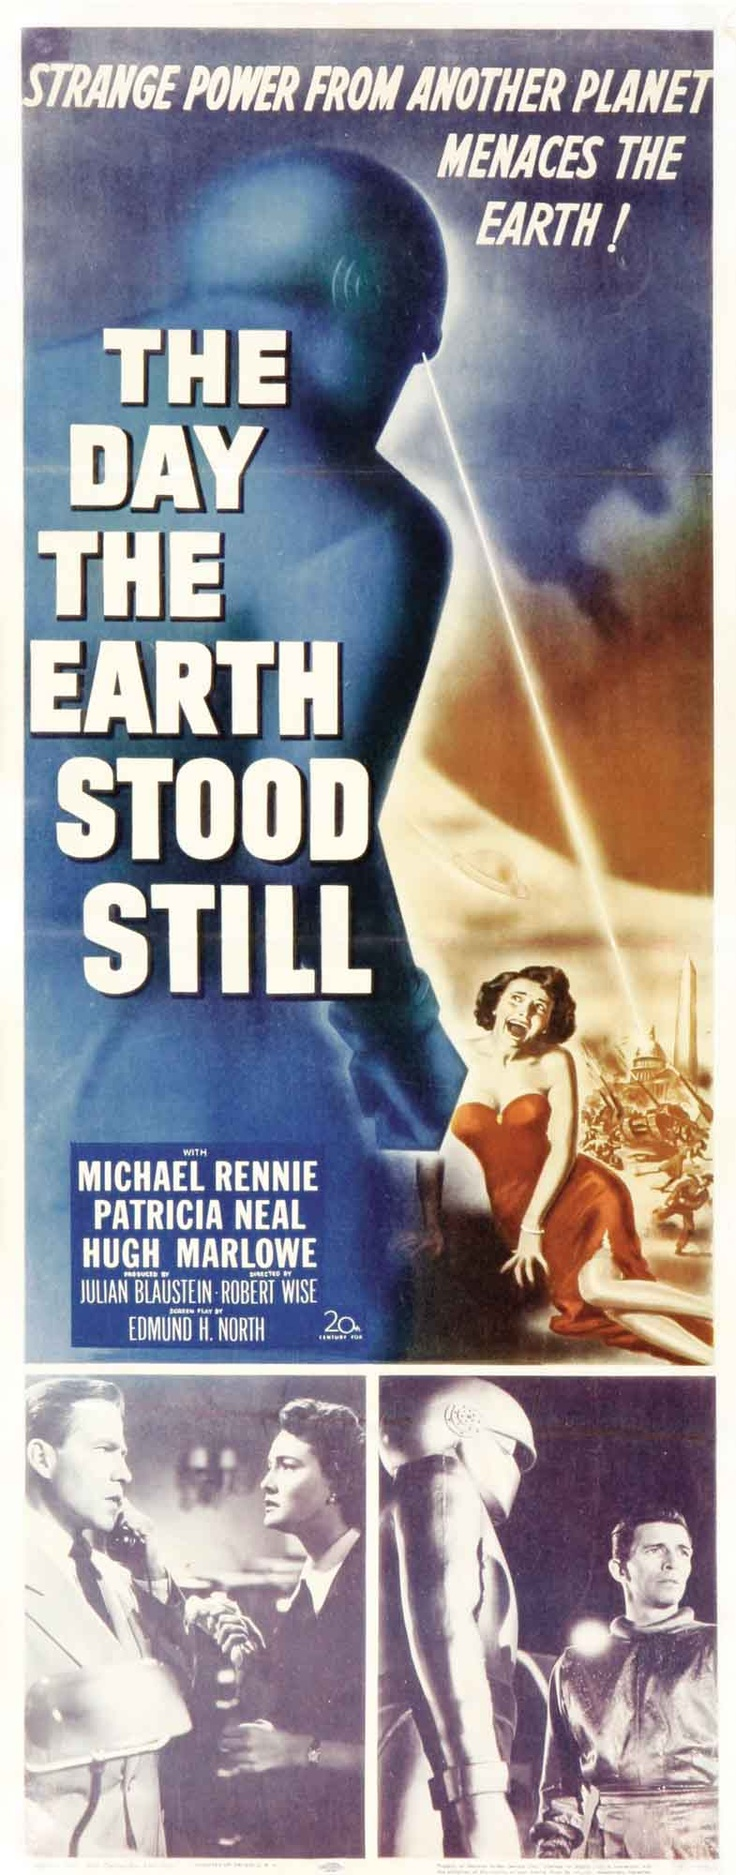 Best Film Posters : The Day the Earth Stood Still, 1951 ...